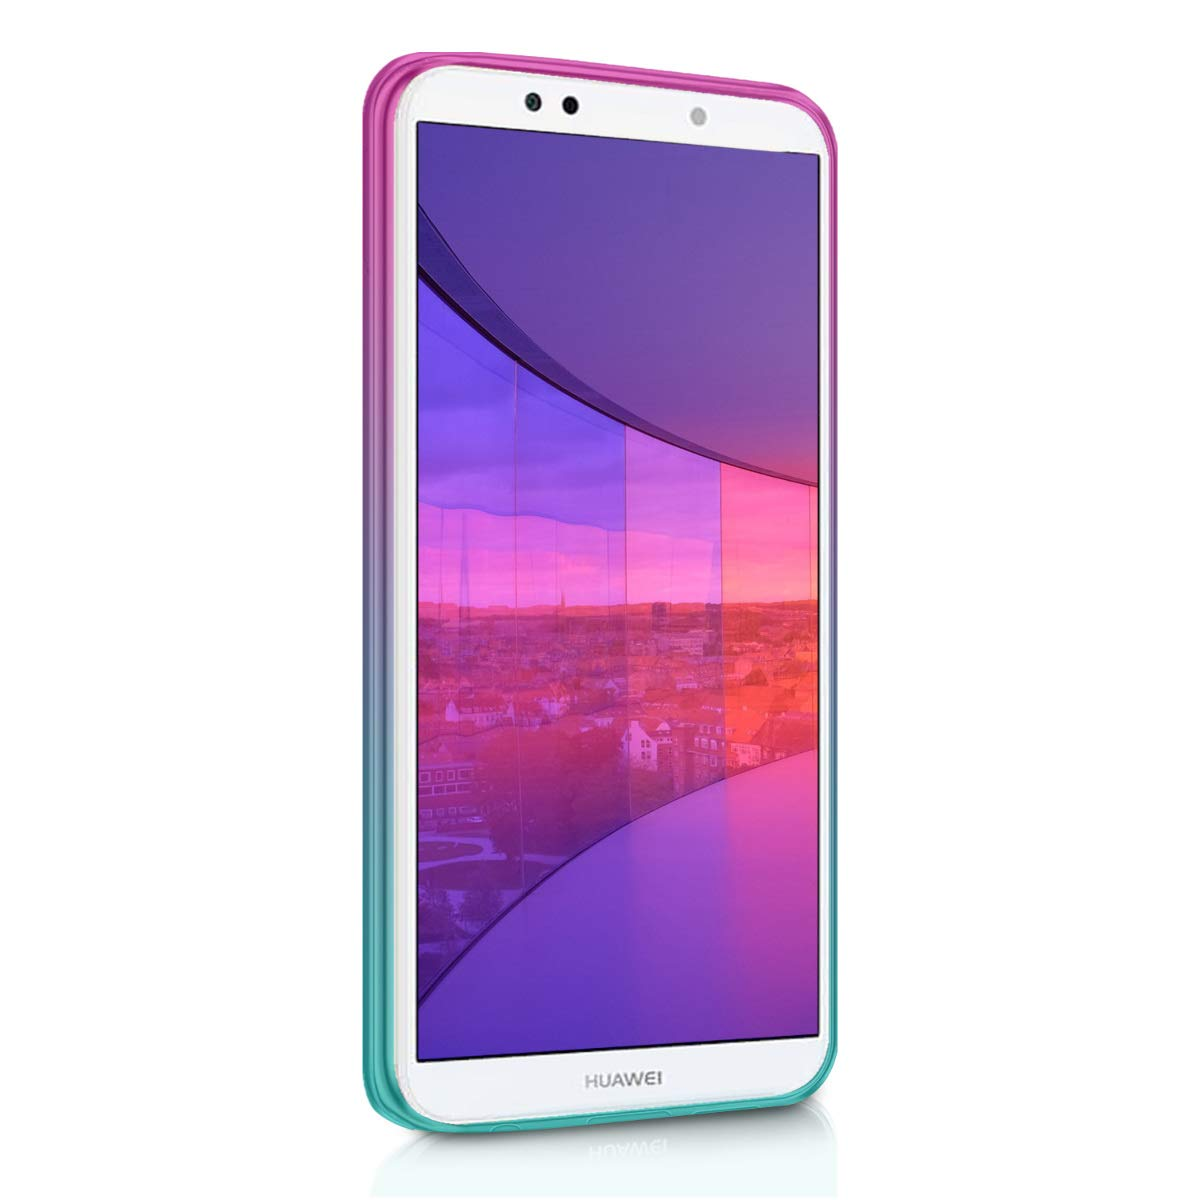 kwmobile TPU Silicone Case for Huawei Y7 (2018)/Y7 Prime (2018) - Crystal Clear Smartphone Back Case Protective Cover - Dark Pink/Blue/Transparent